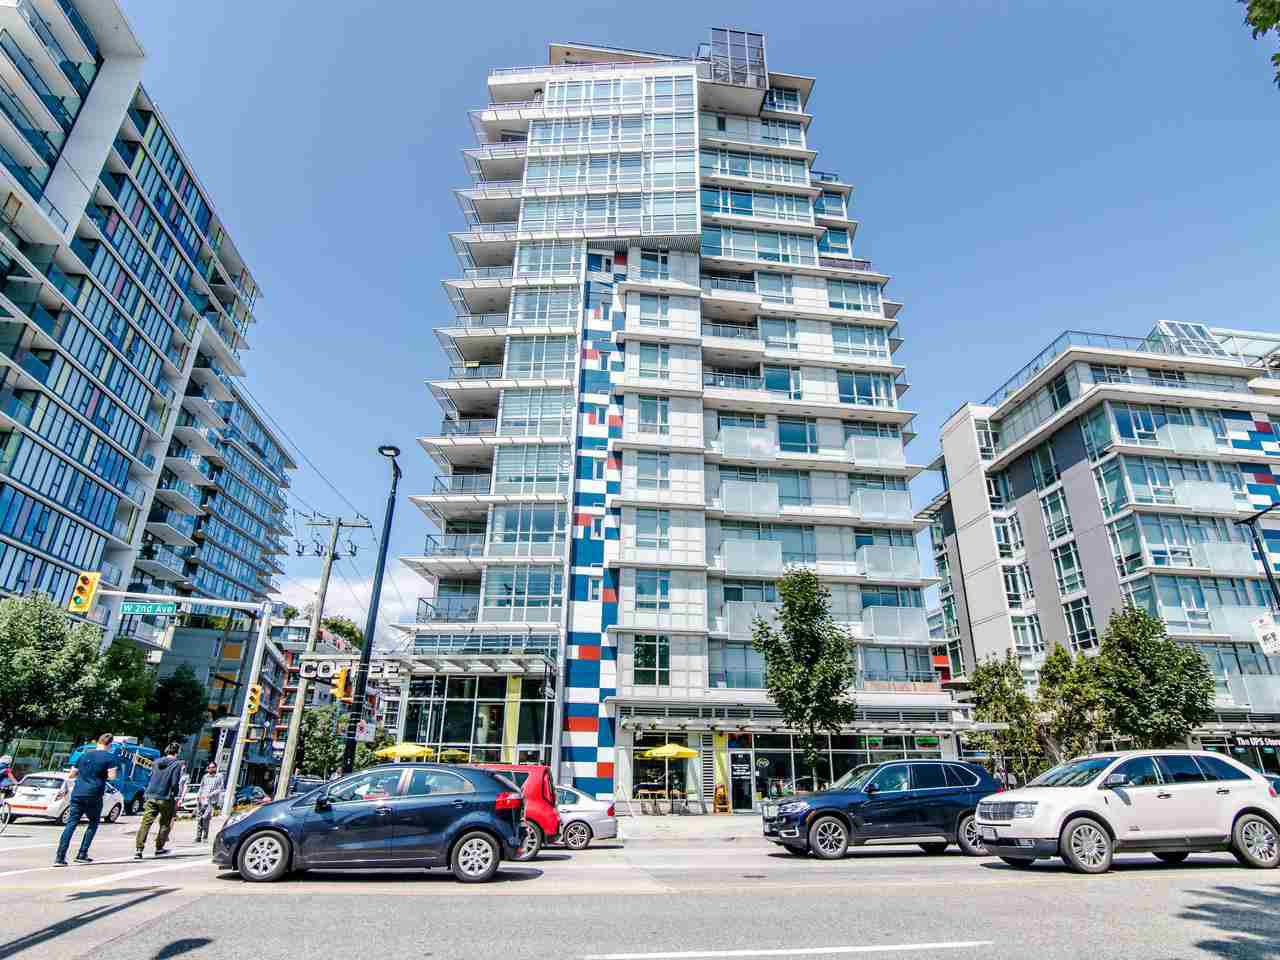 """Main Photo: 607 89 W 2ND Avenue in Vancouver: False Creek Condo for sale in """"Pinnacle Living False Creek"""" (Vancouver West)  : MLS®# R2430247"""